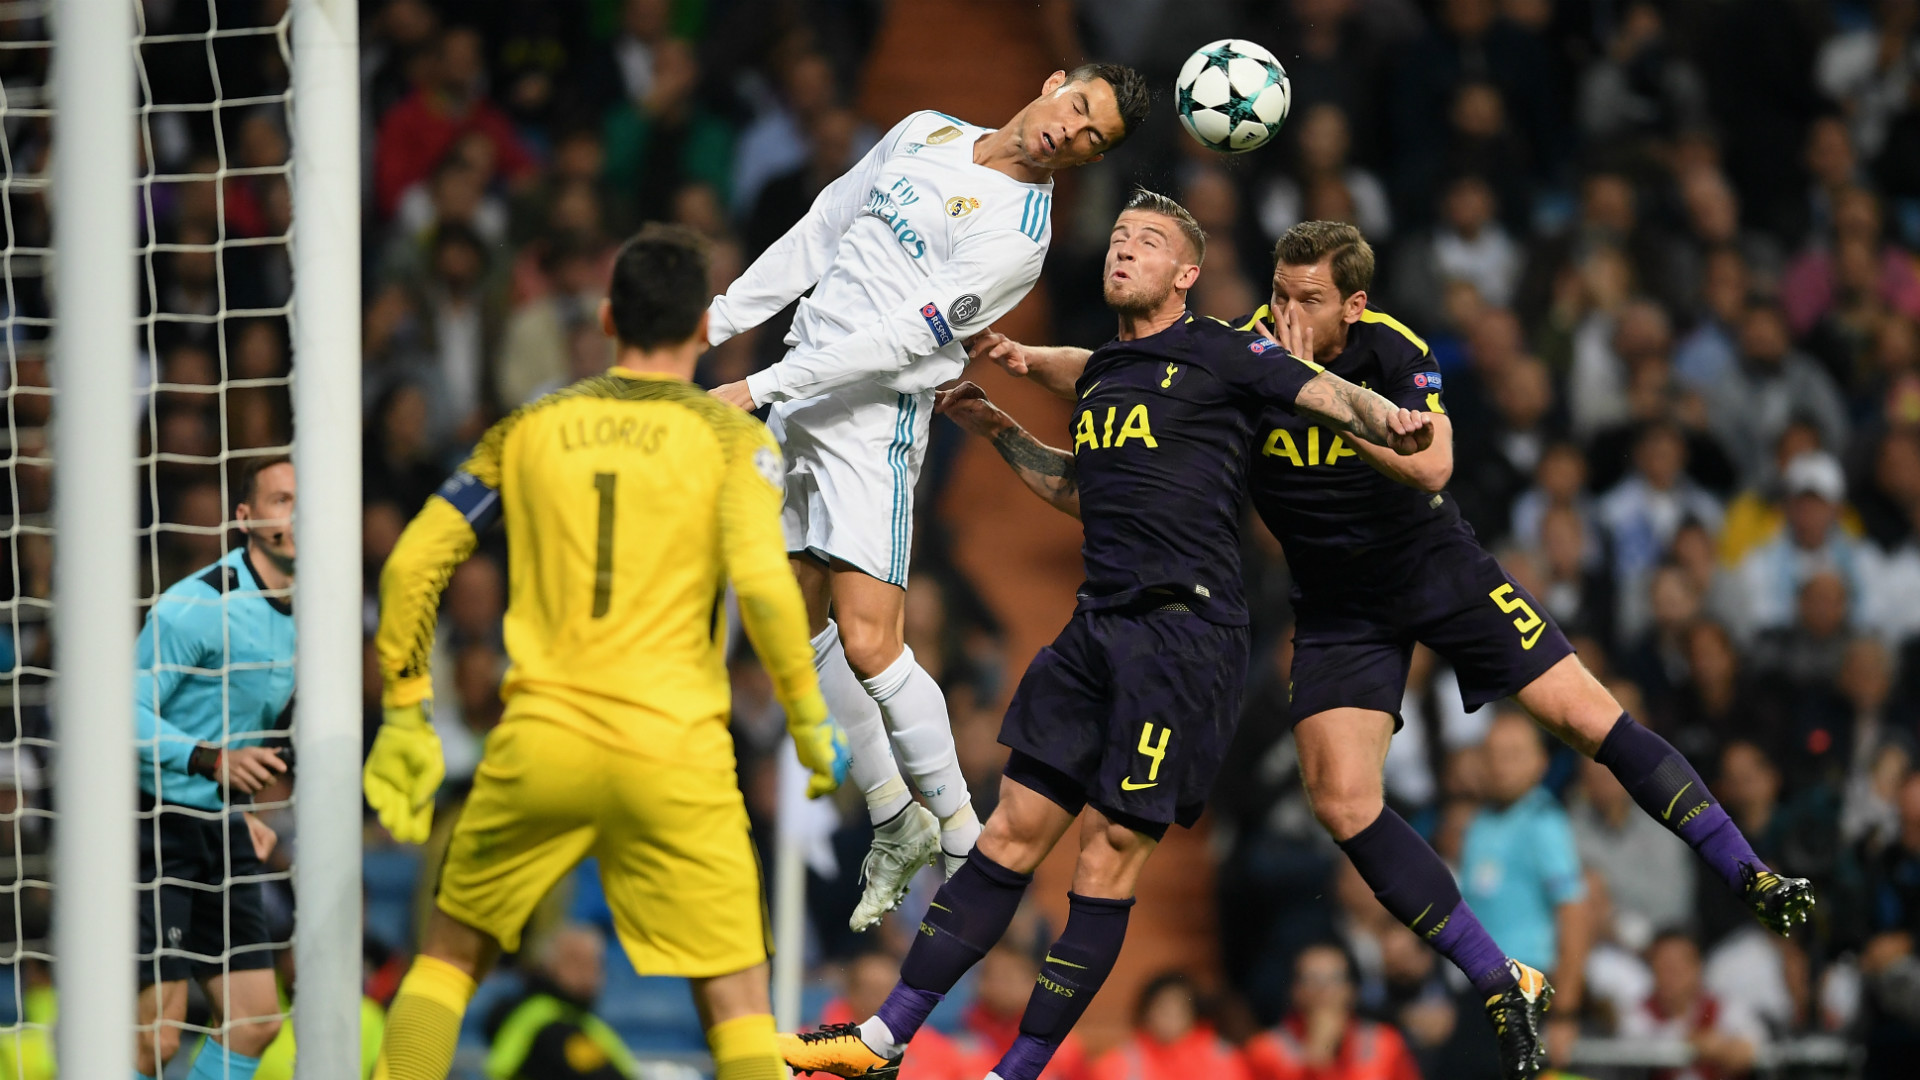 CRISTIANO RONALDO REAL MADRID TOTTENHAM CHAMPIONS LEAGUE